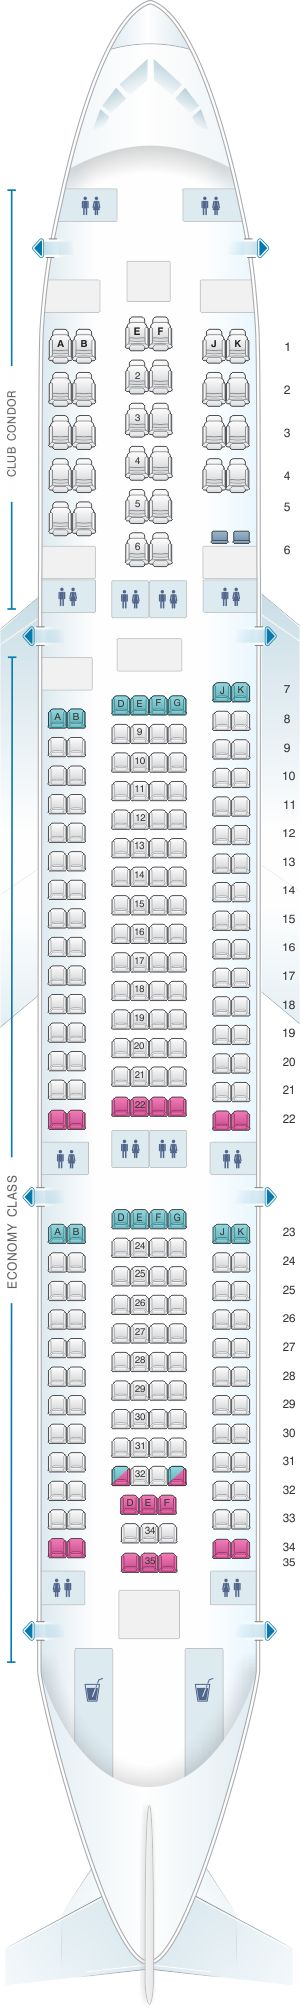 Seat Map Aerolineas Argentinas Airbus A340 200